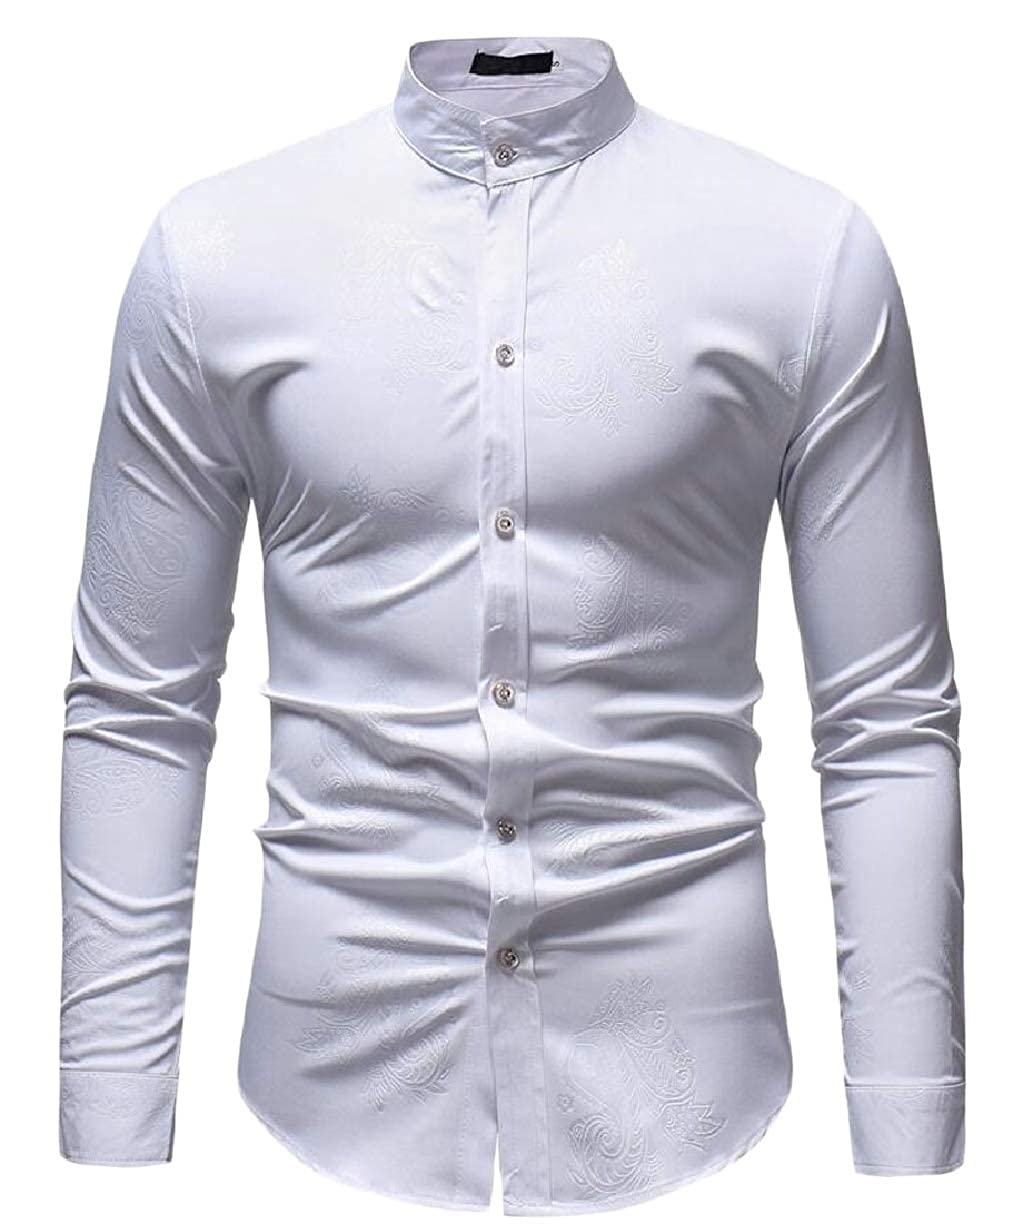 ZXFHZS Mens Solid Color Patterns Long Sleeve Stand Collar Button Front Shirts